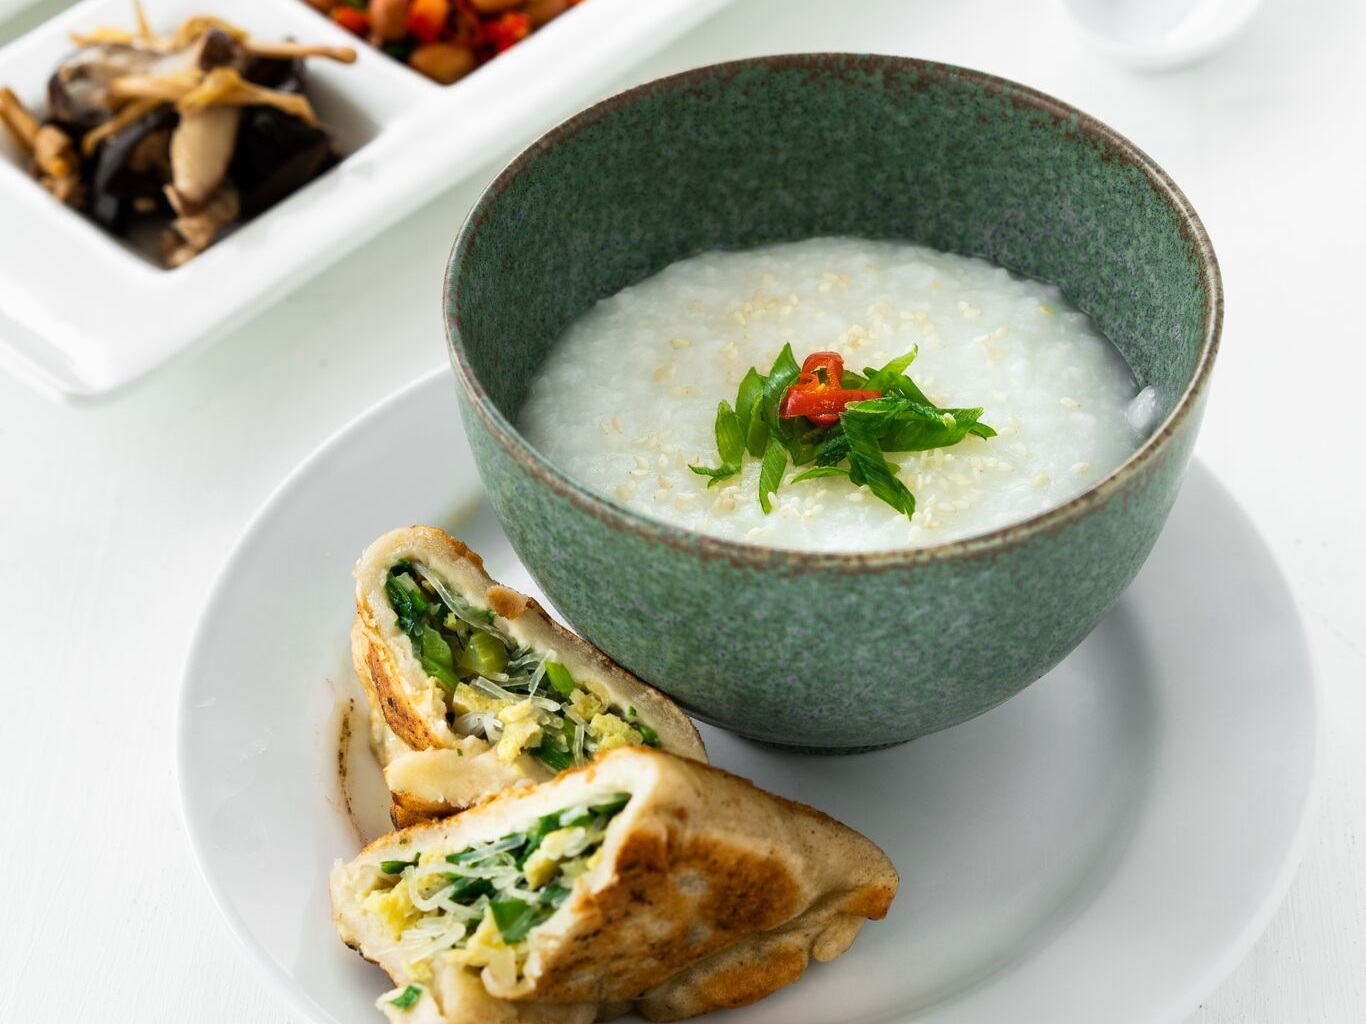 Congee and Me Breakfast Pop-up - Saturday & Sunday August 3 & 4, 2019 | 8:30am - 10:30am: Congee and Me is bringing traditional rice porridge back in style with fun toppings, some extra spunk, and lots of love. Come try our twist on the original Chinese breakfast. It is inspired by how Brookline native, Arielle Chernin, grew up eating in a Chinese-American household.RSVP